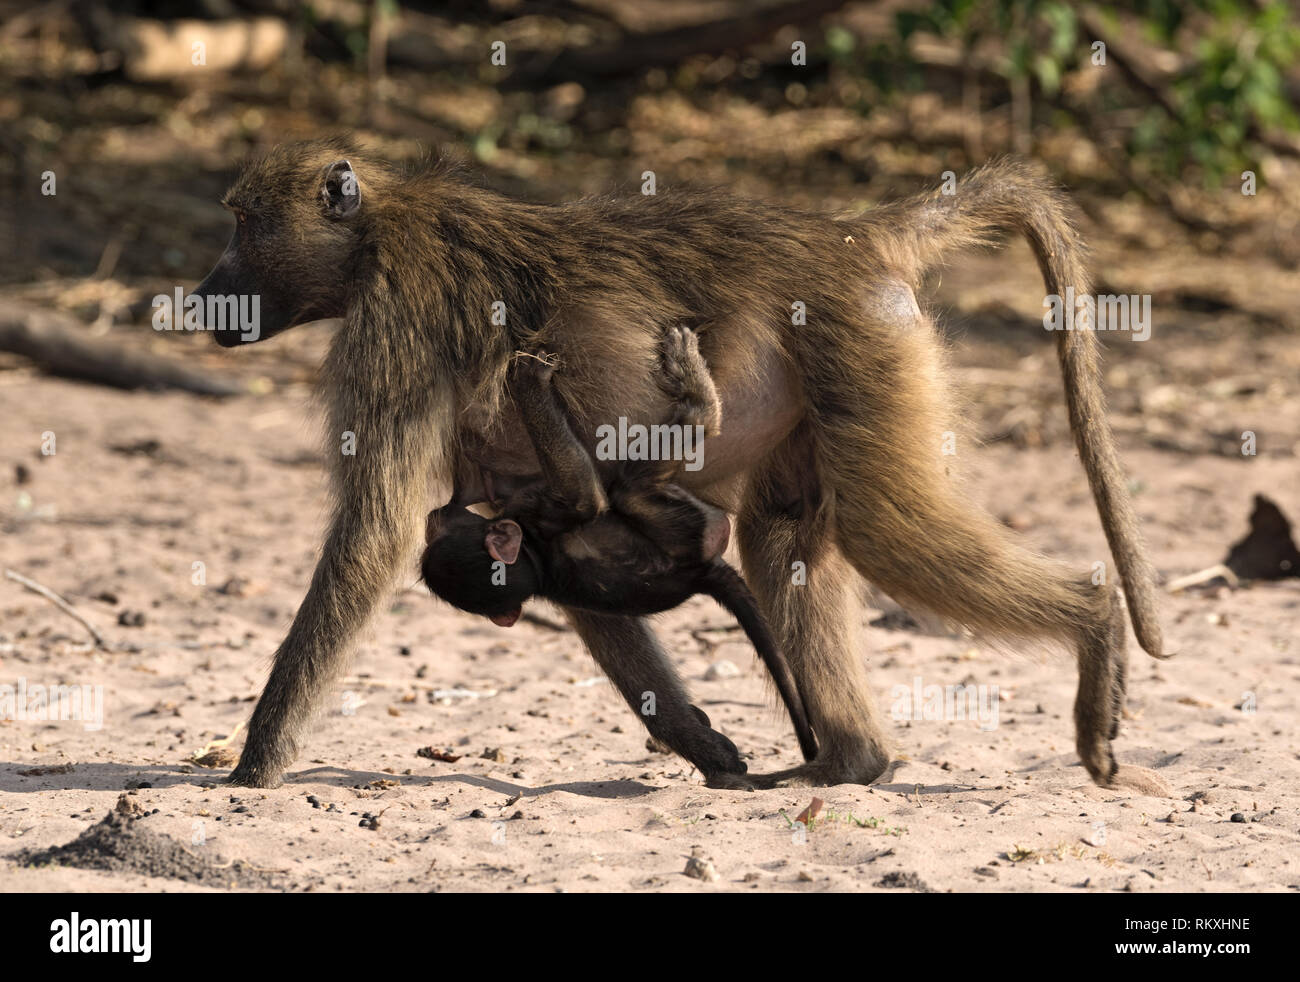 Baboon mother with a child on the bank of the Chobe River in Botswana - Stock Image